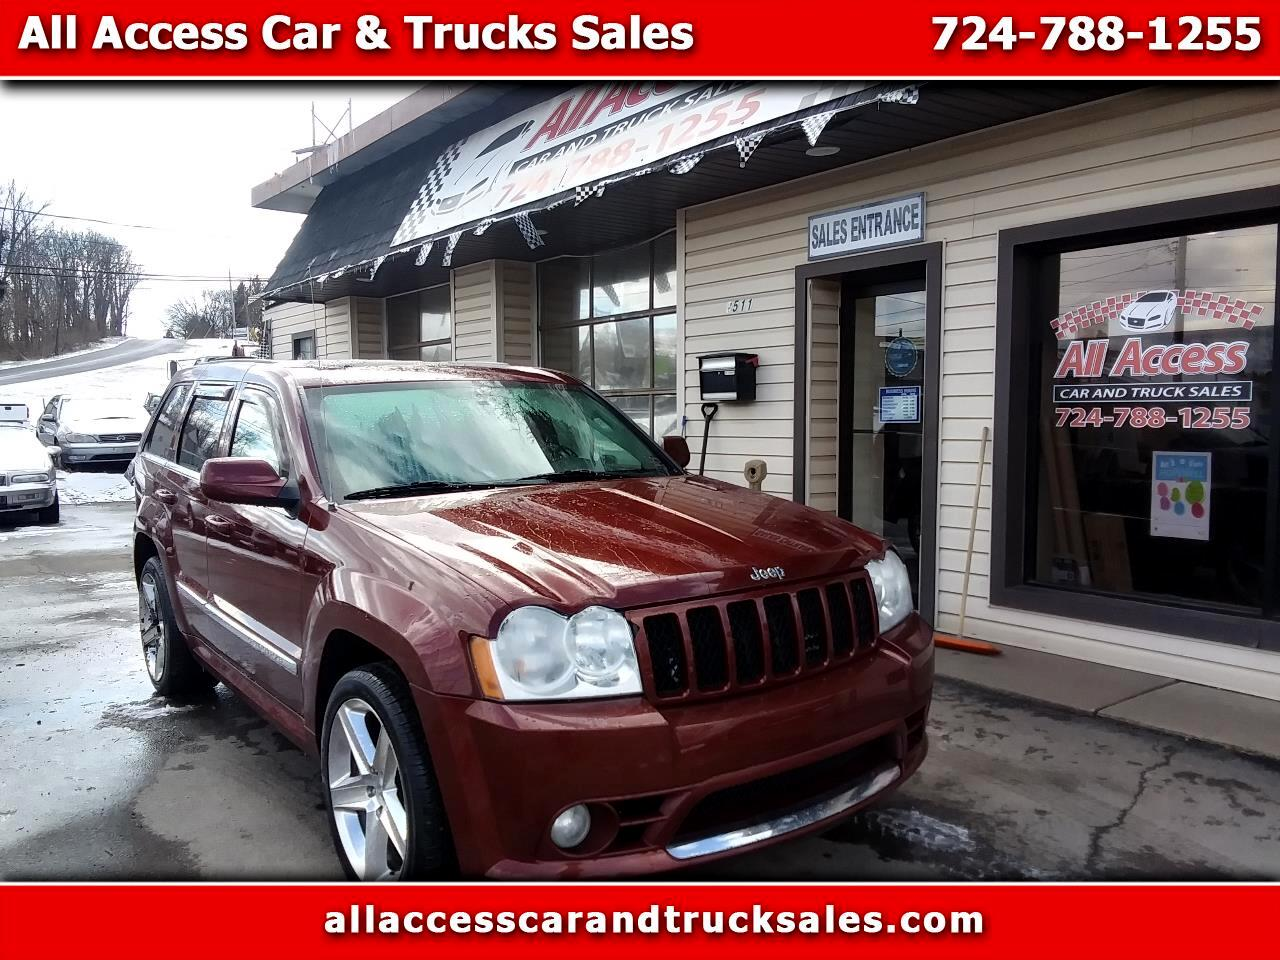 Jeep Grand Cherokee 4WD 4dr SRT-8 2007